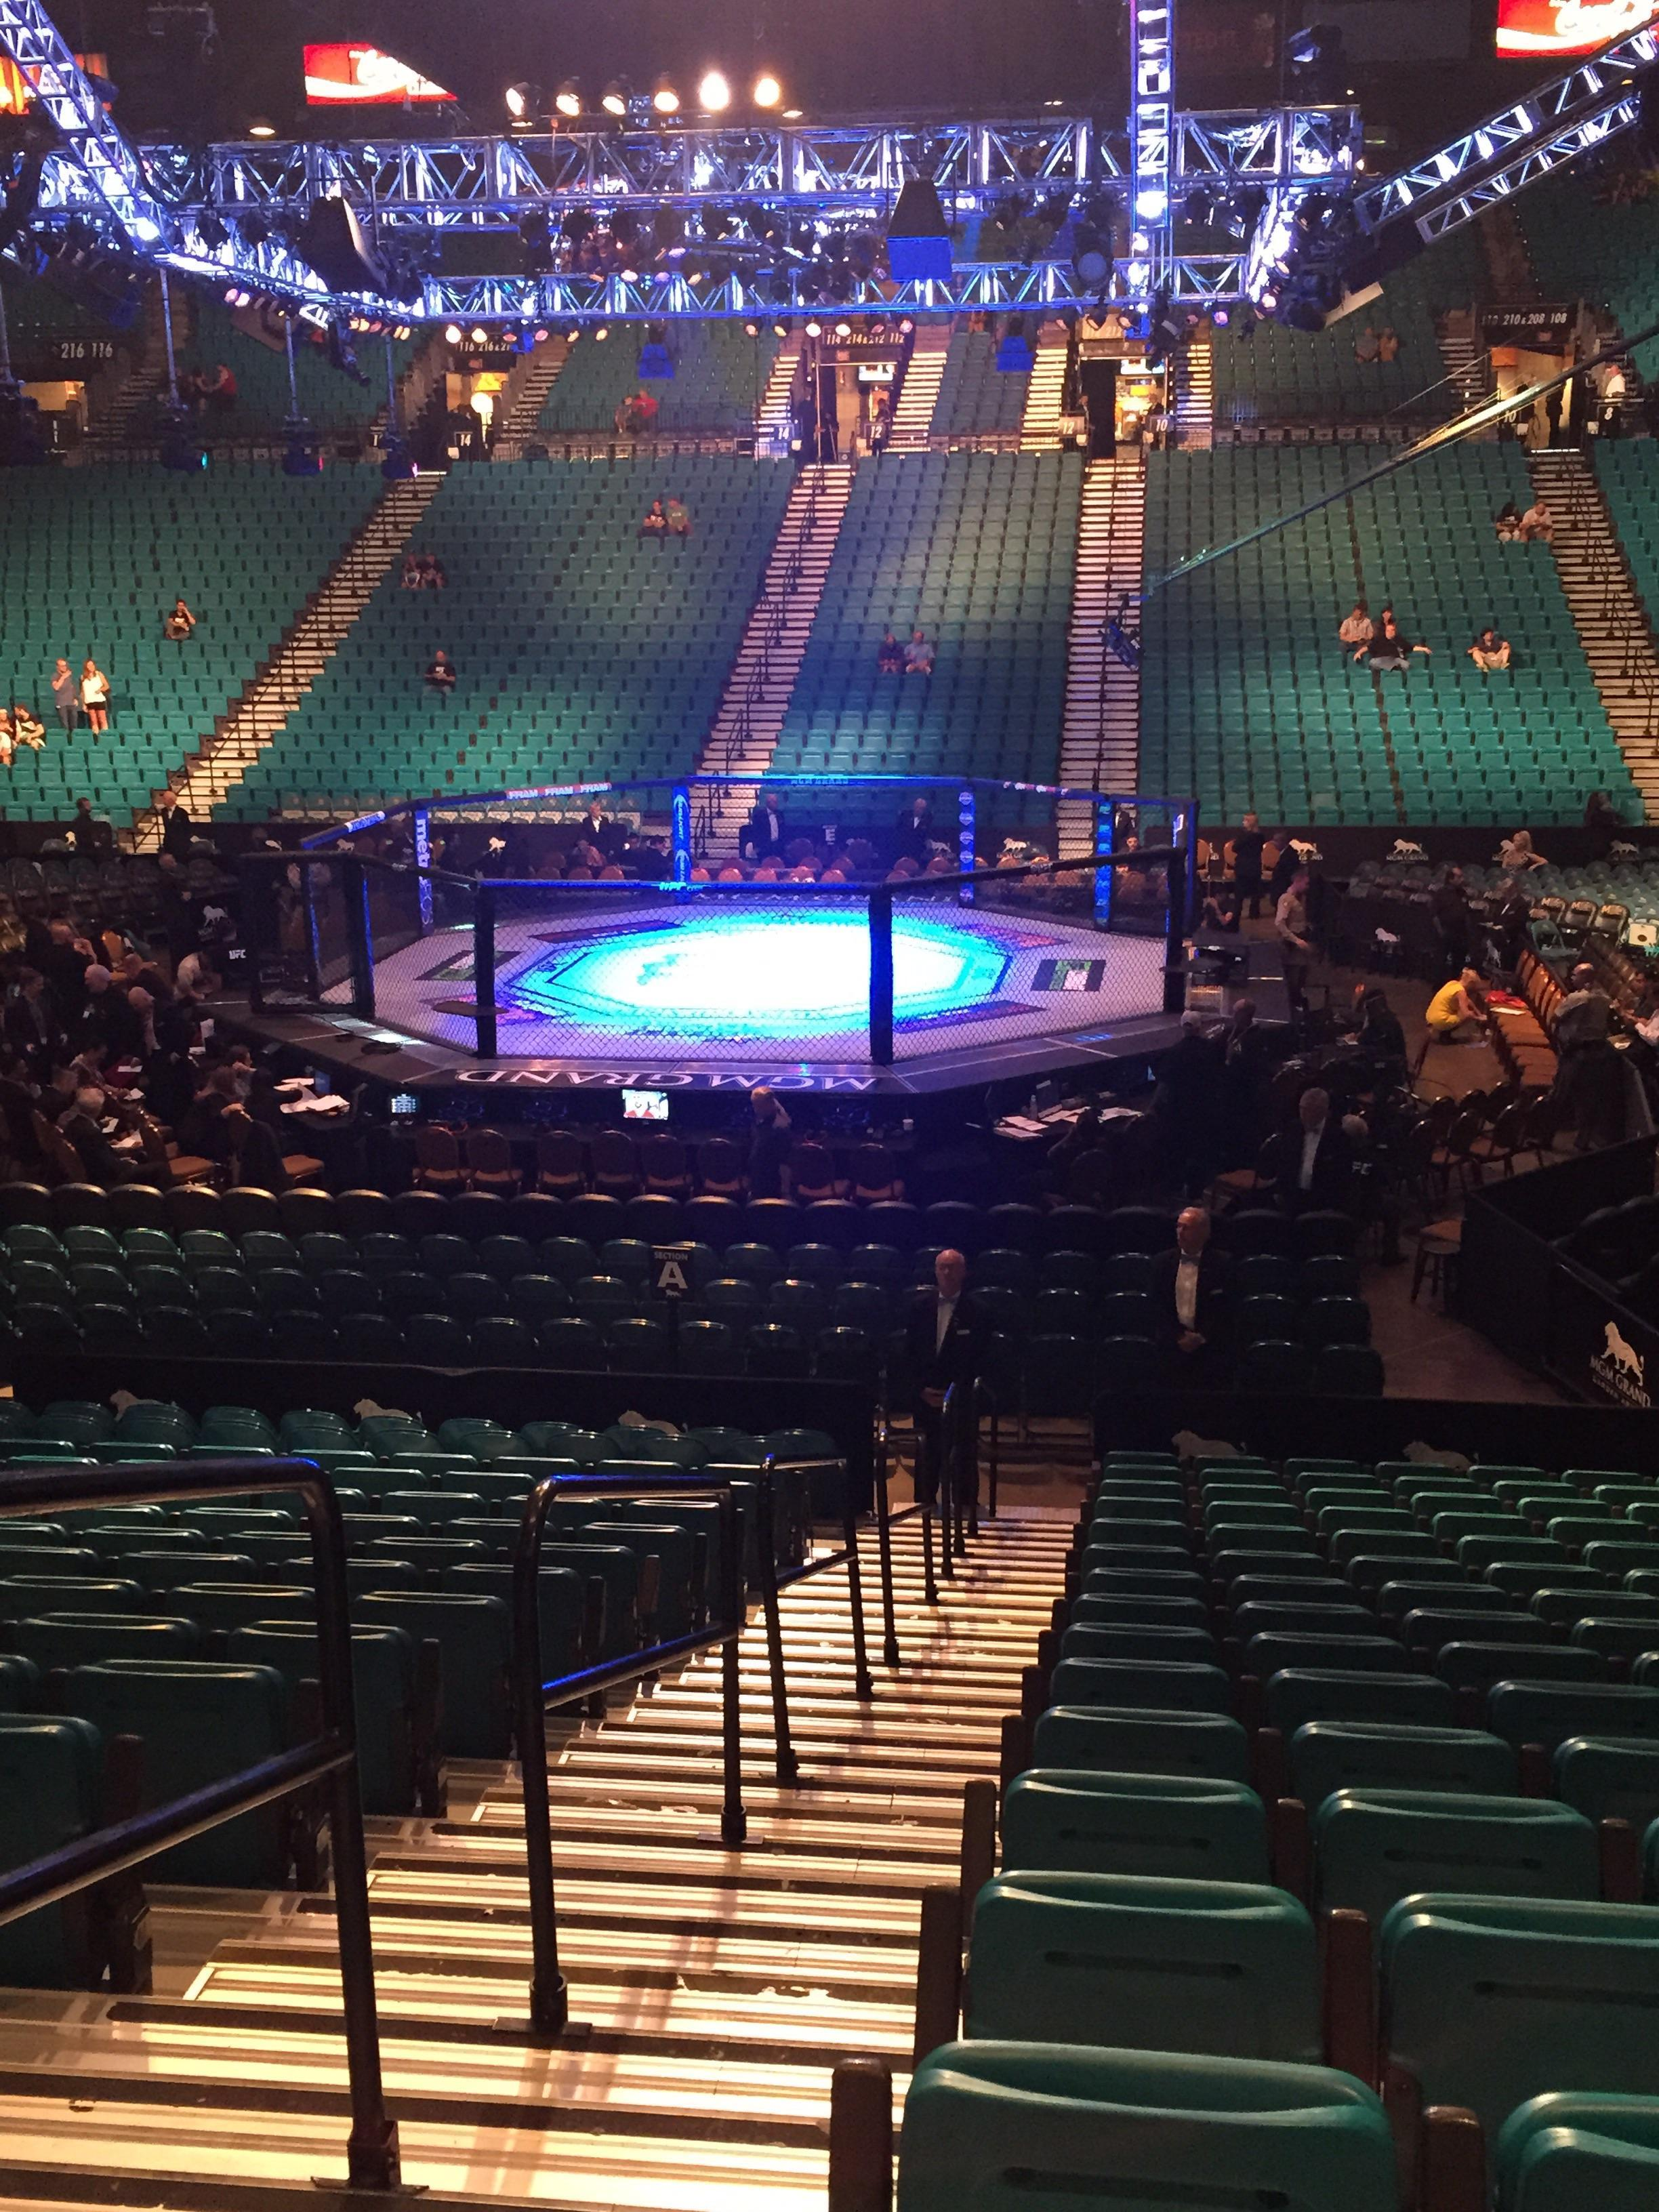 MGM Grand Garden Arena Section 11 Row S Seat 17.